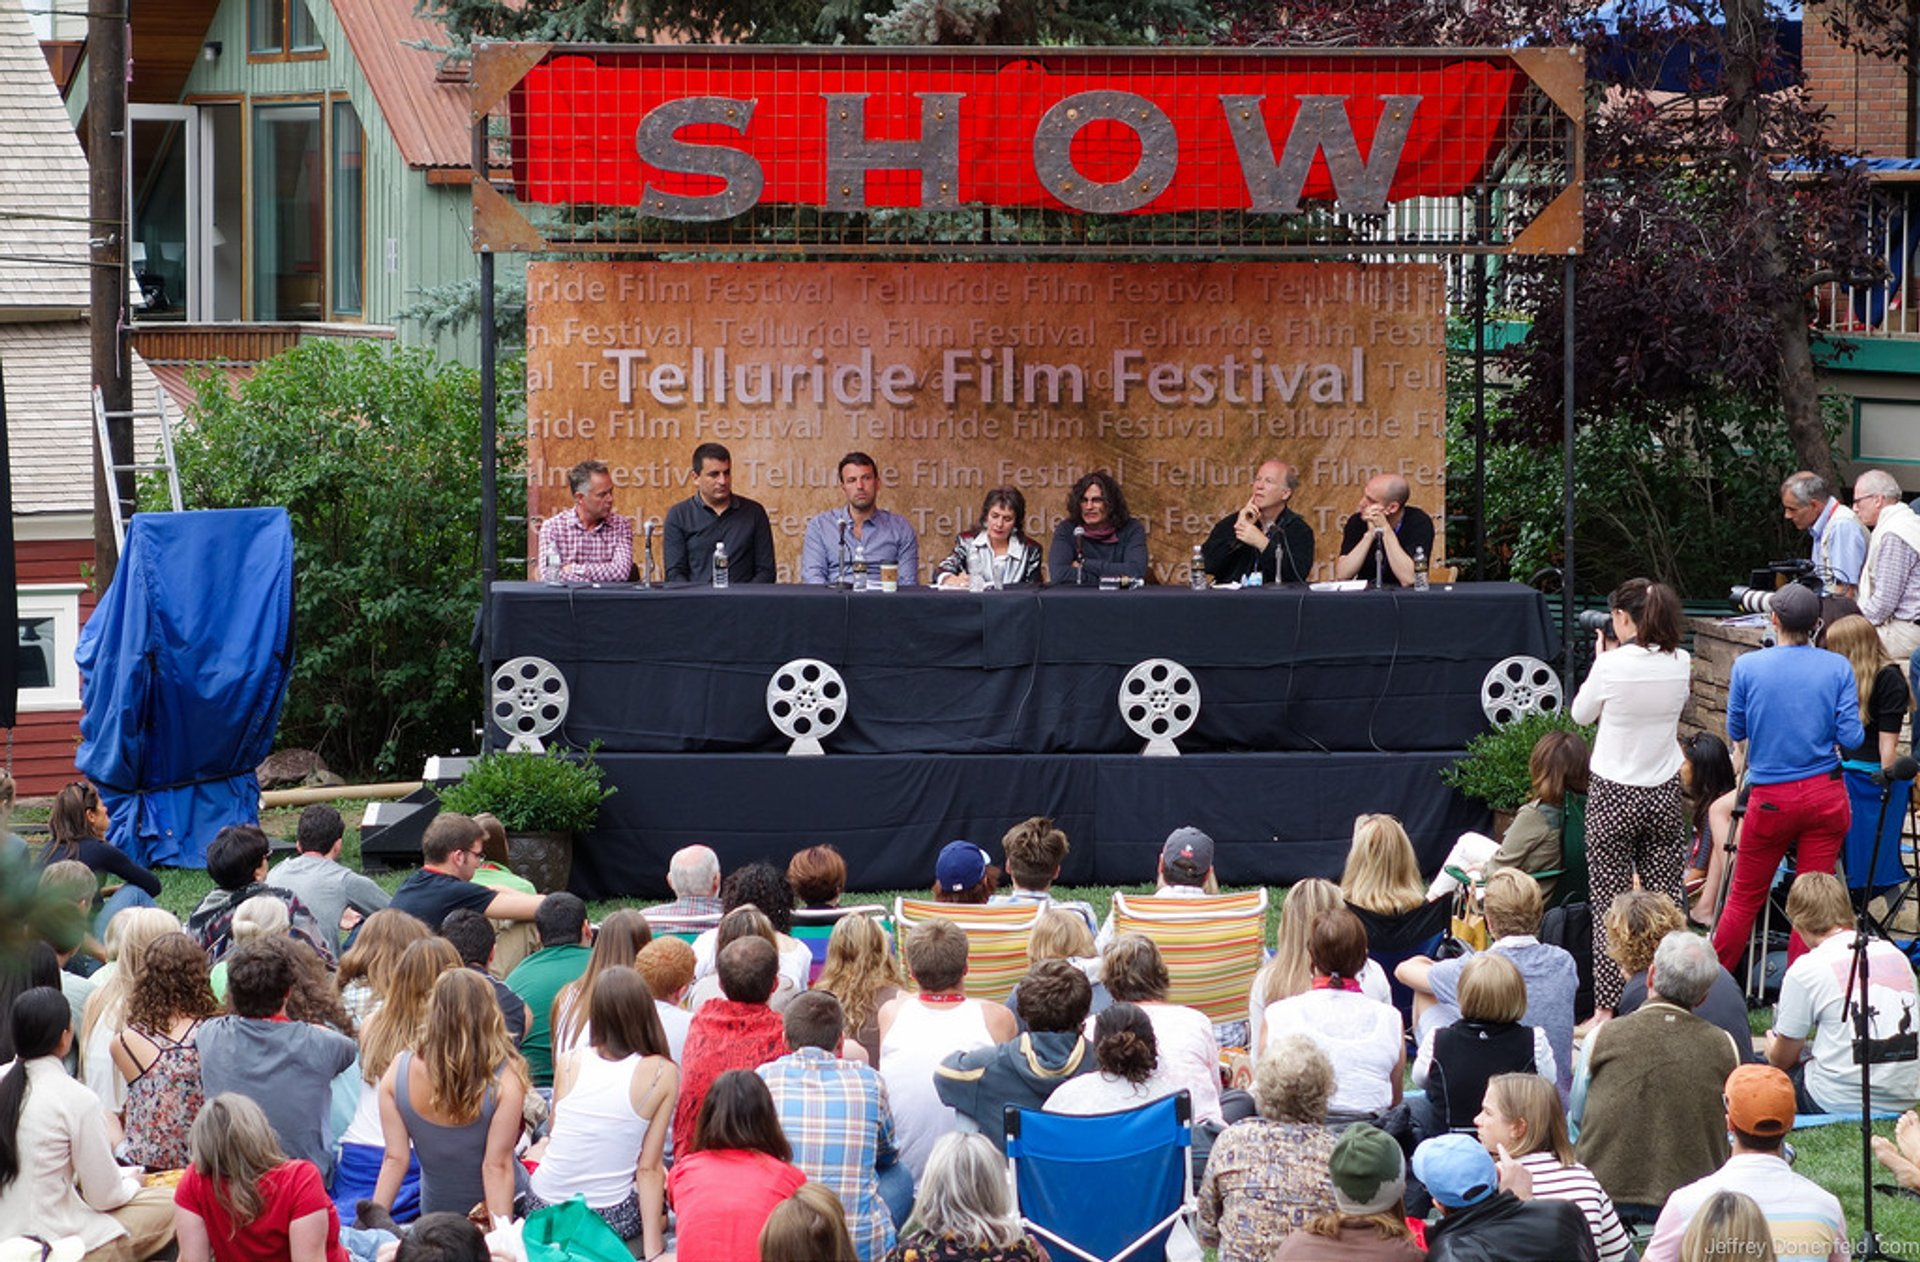 Telluride Film Festival in Colorado 2020 - Best Time